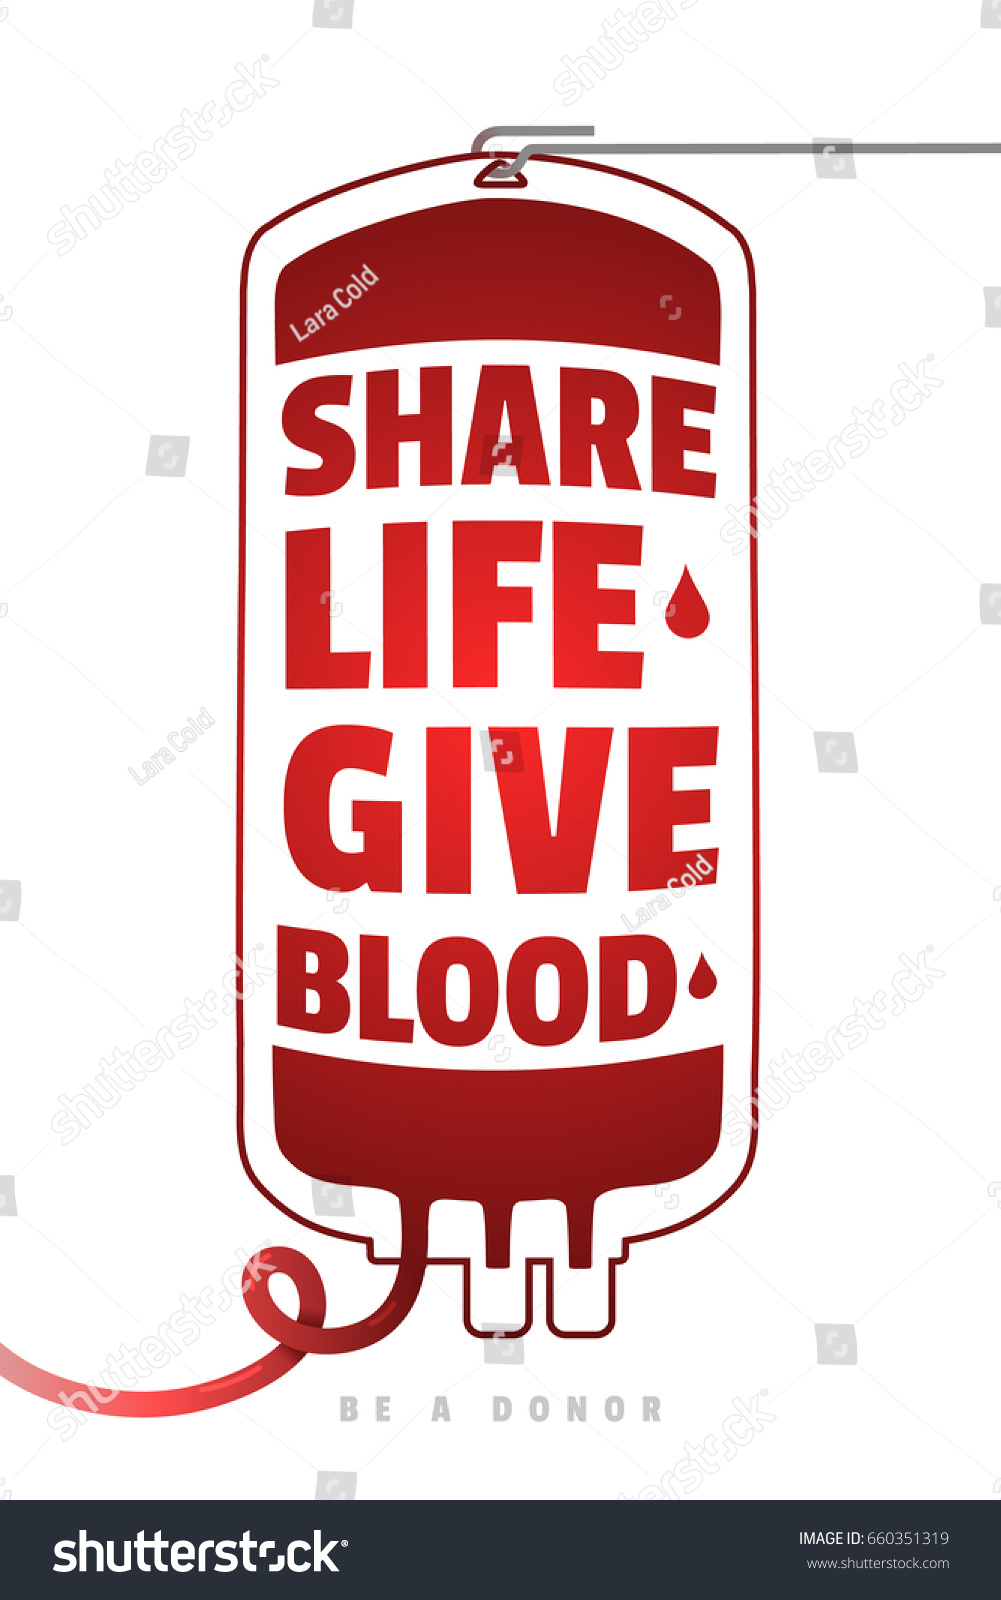 be donor blood donation motivational poster stock vector royalty